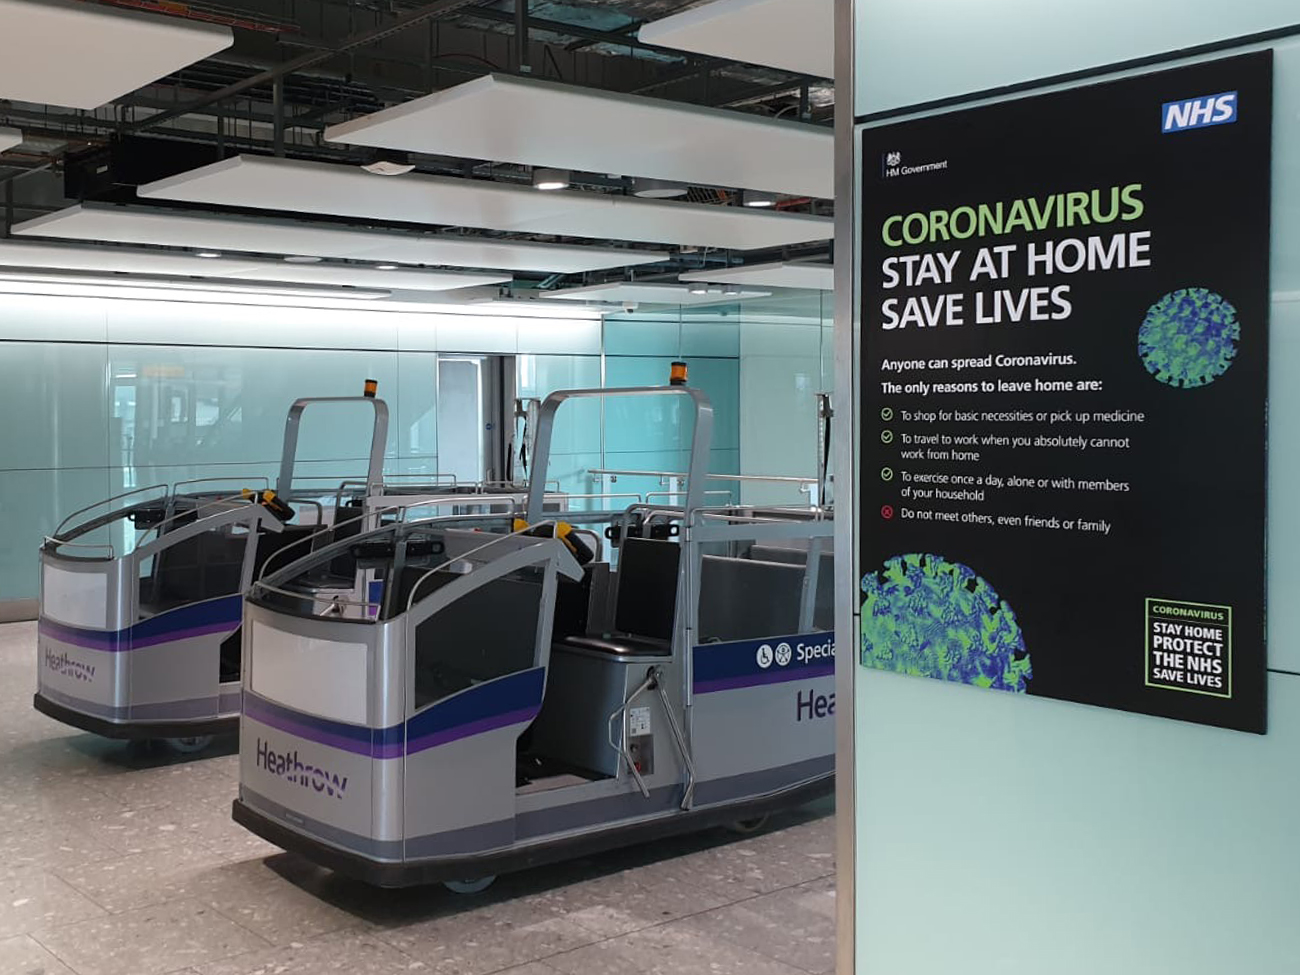 Coronavirus Poster Heathrow buggy